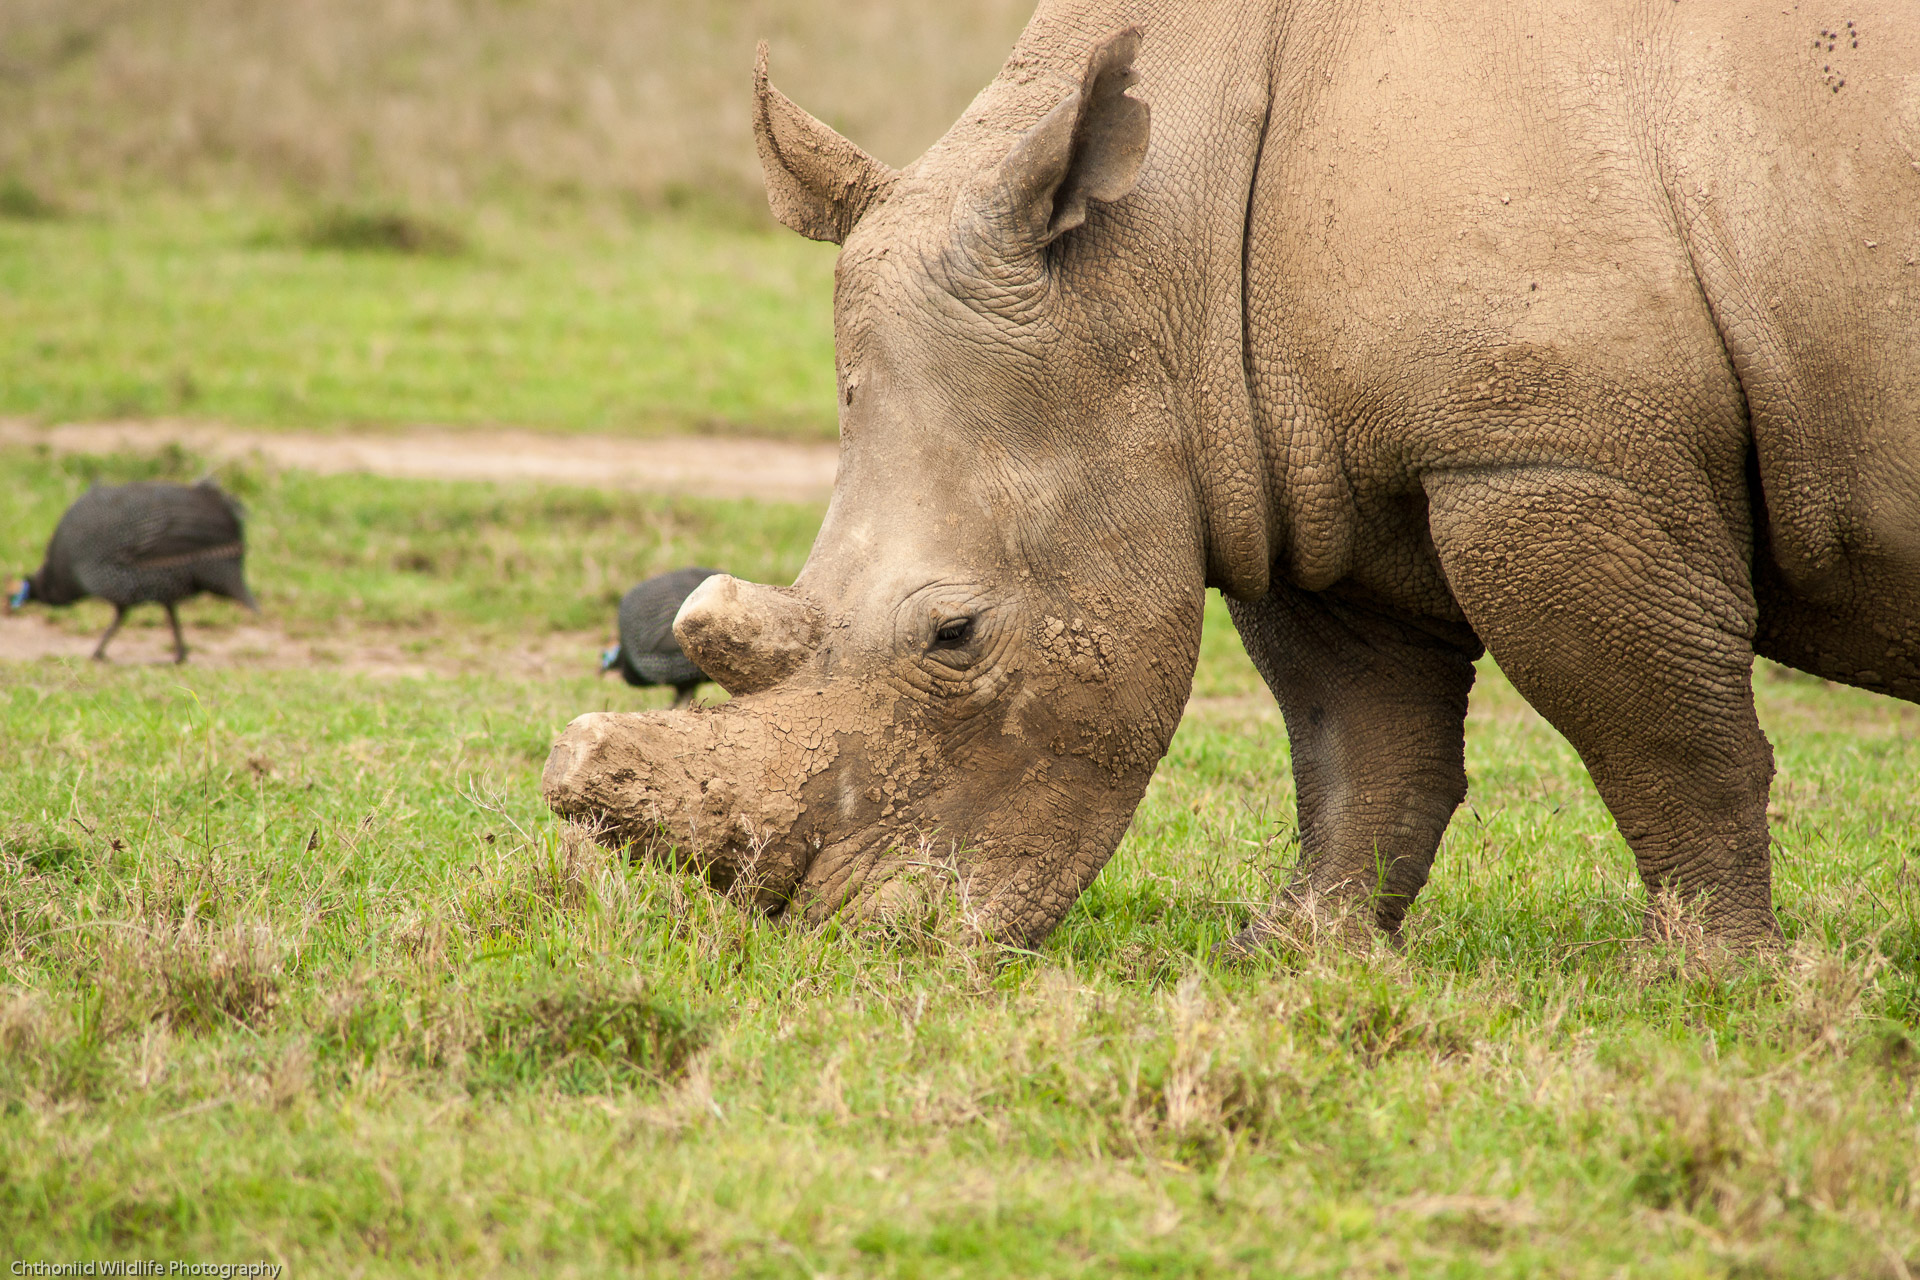 Featured image: Let's not panic: Rhino horn for sale in NZ is not a catastrophe